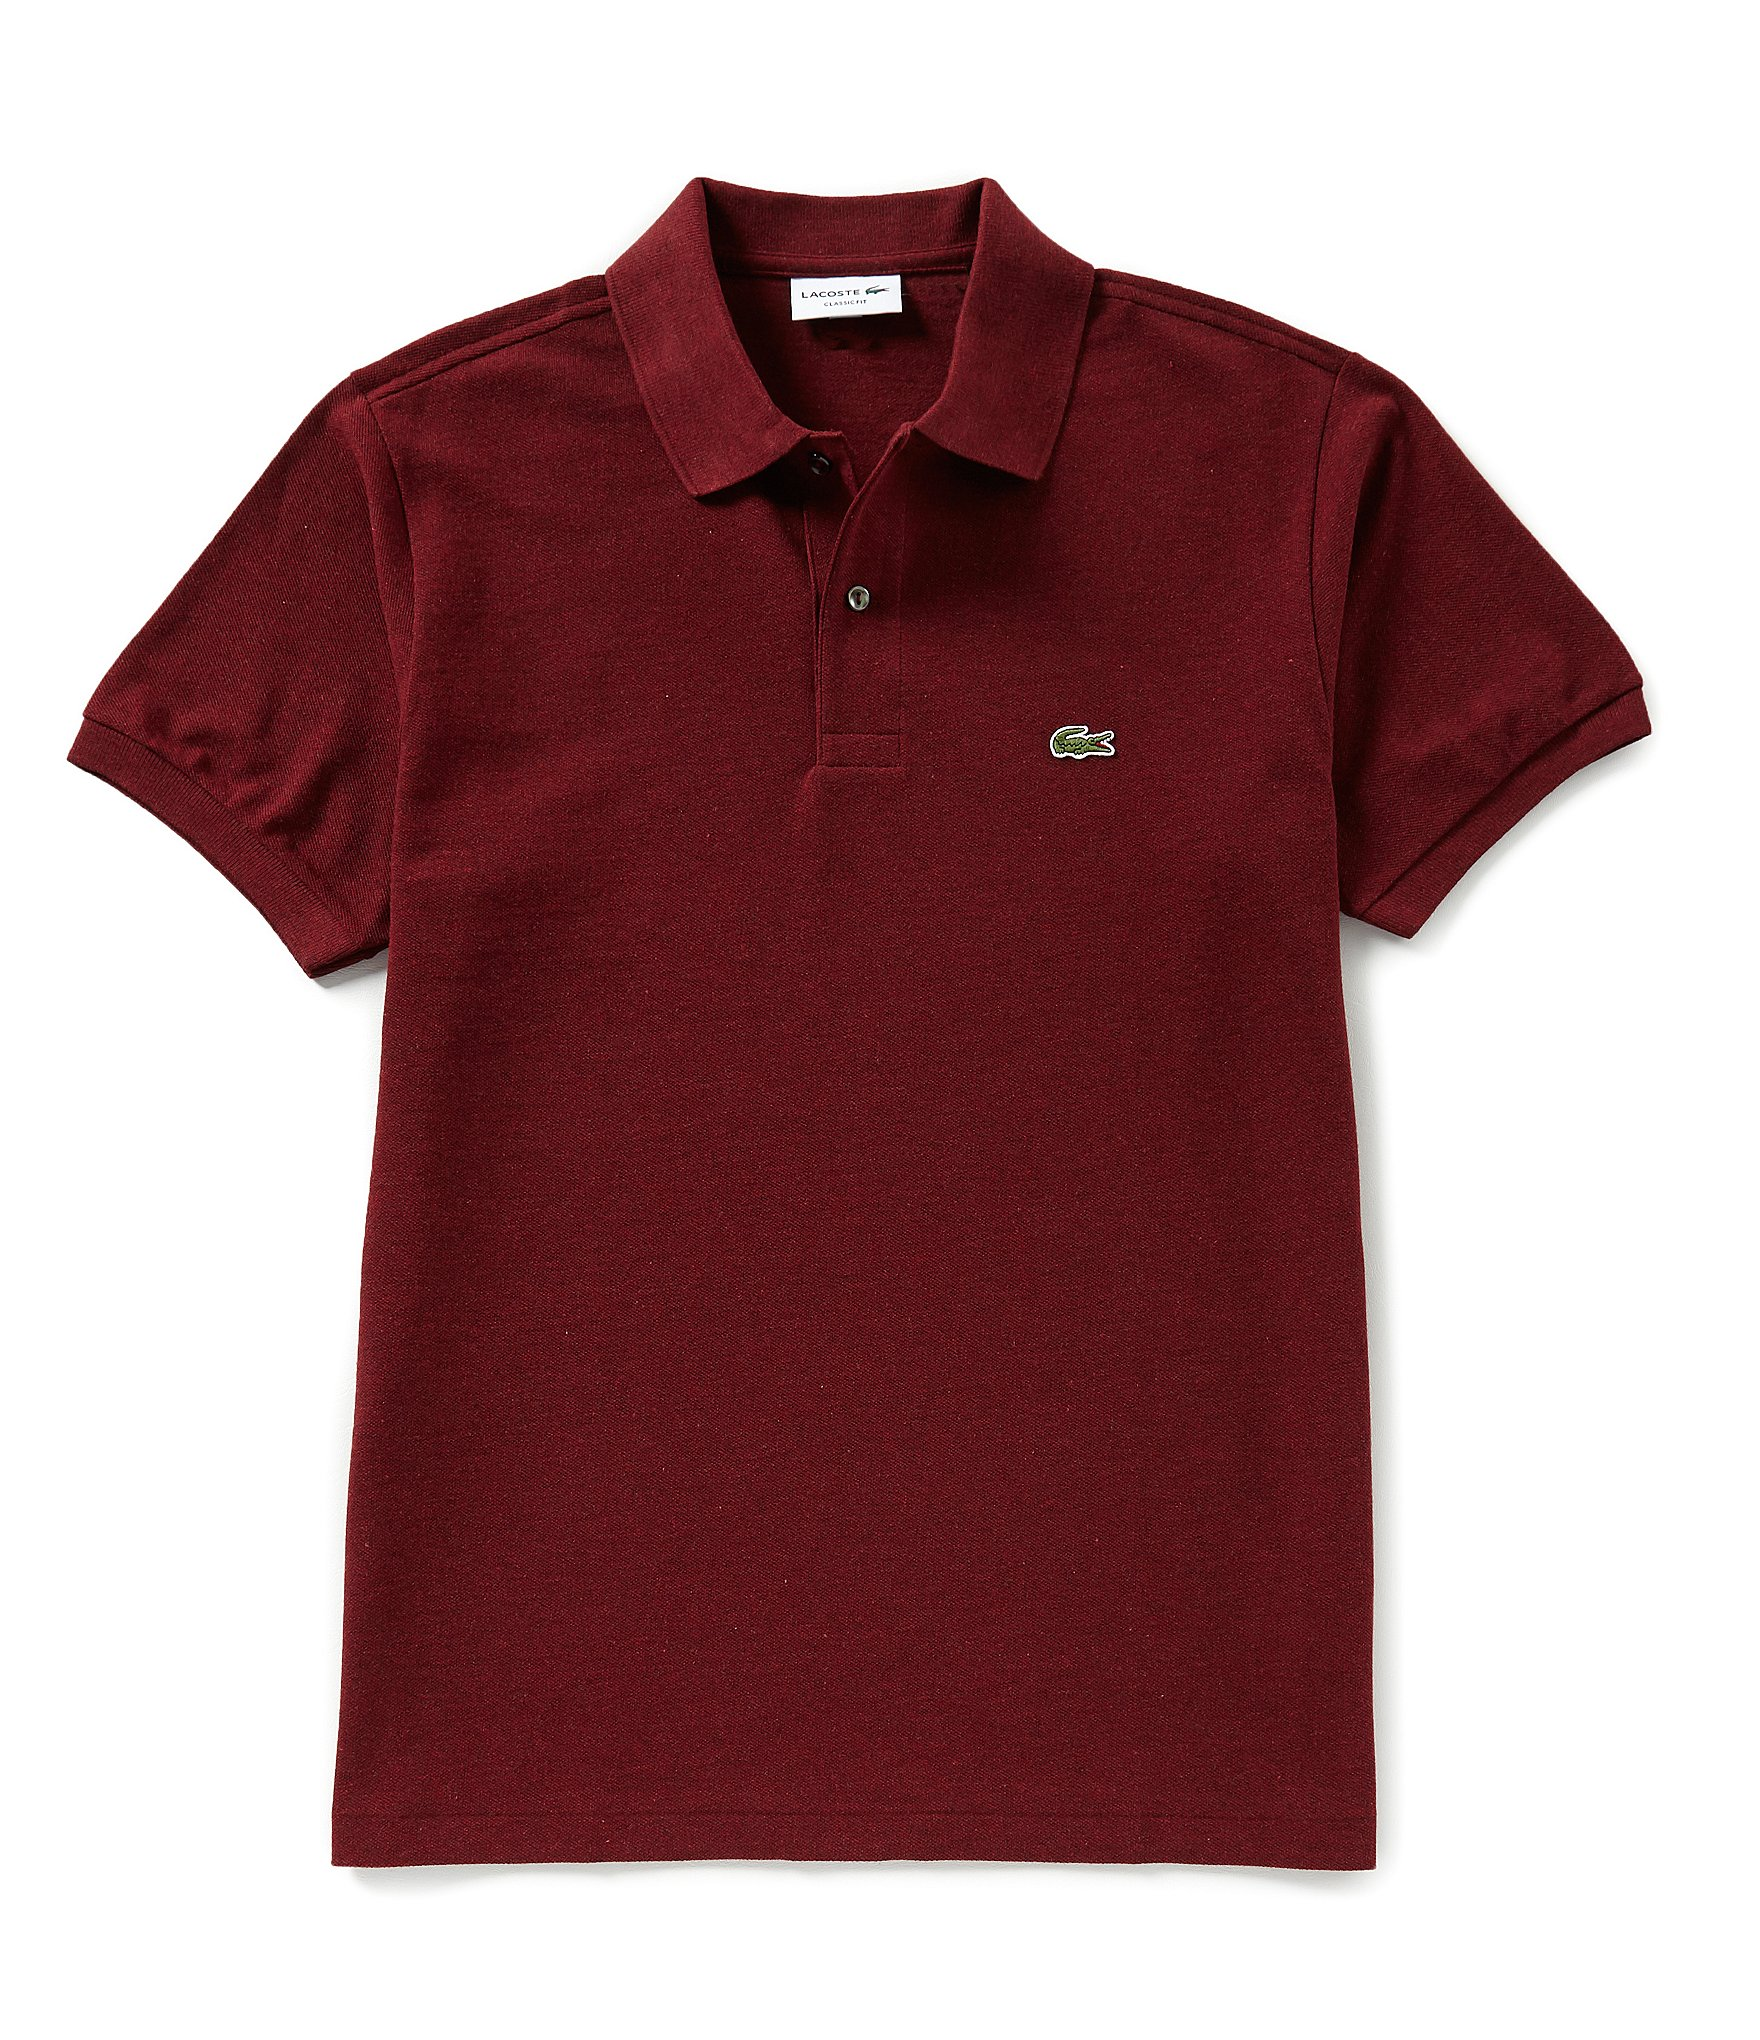 nueva productos 58682 4519a Lacoste Classic Chine Short-Sleeve Polo Shirt | Dillard's